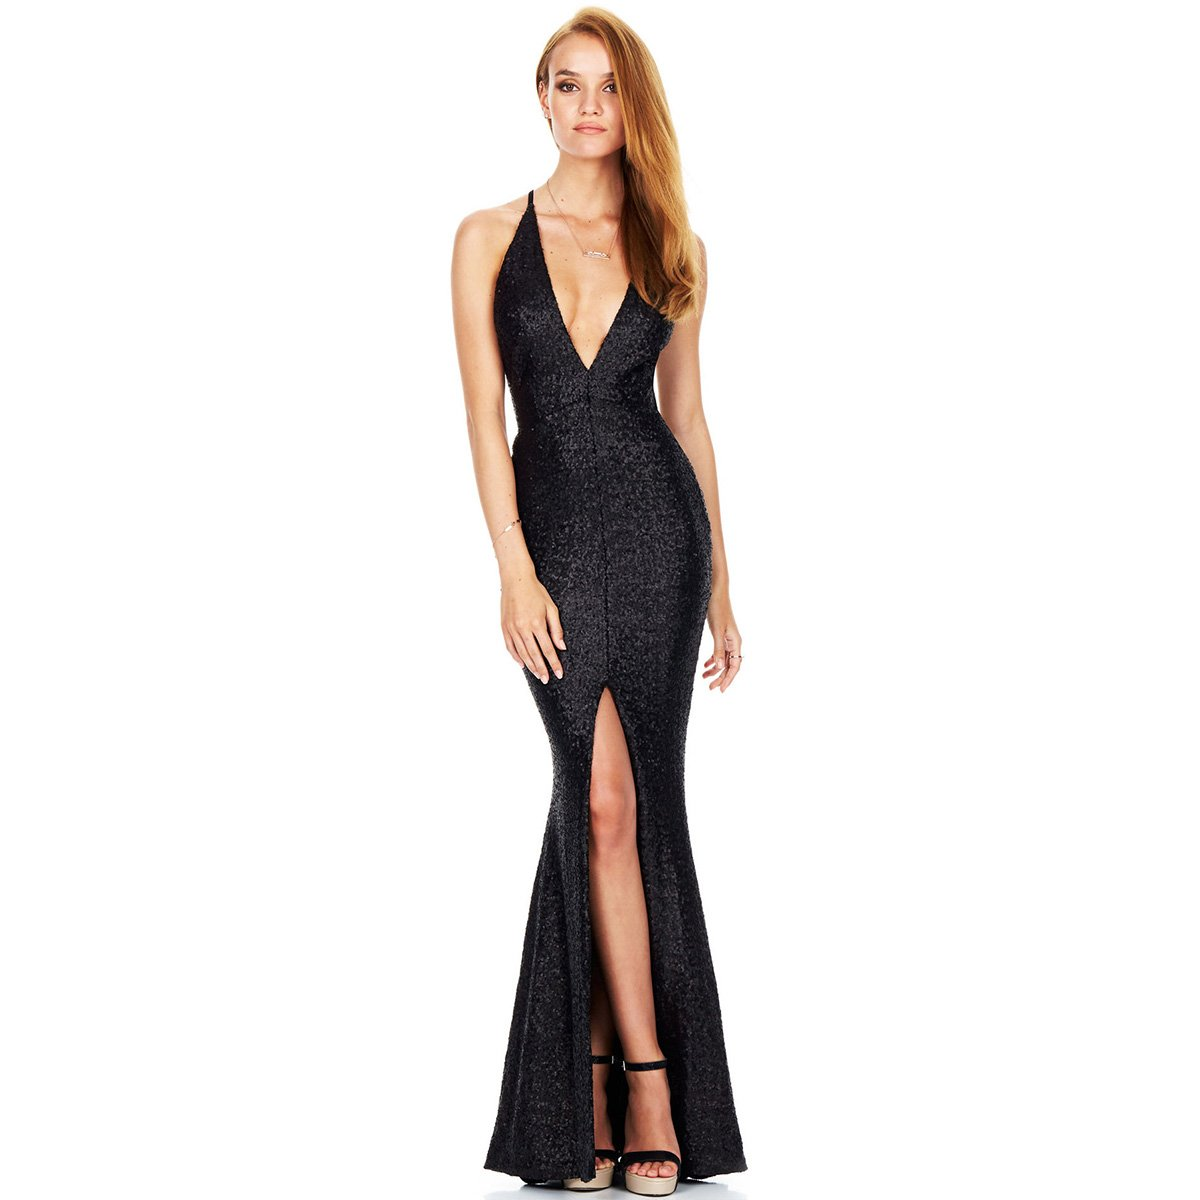 7ada93d09d37 IBTOM CASTLE Women Deep V-Neck Sequin Split Bodycon Cocktail Party Maxi  Dress Mermaid Gown Dance Tight Long Skirt at Amazon Women s Clothing store